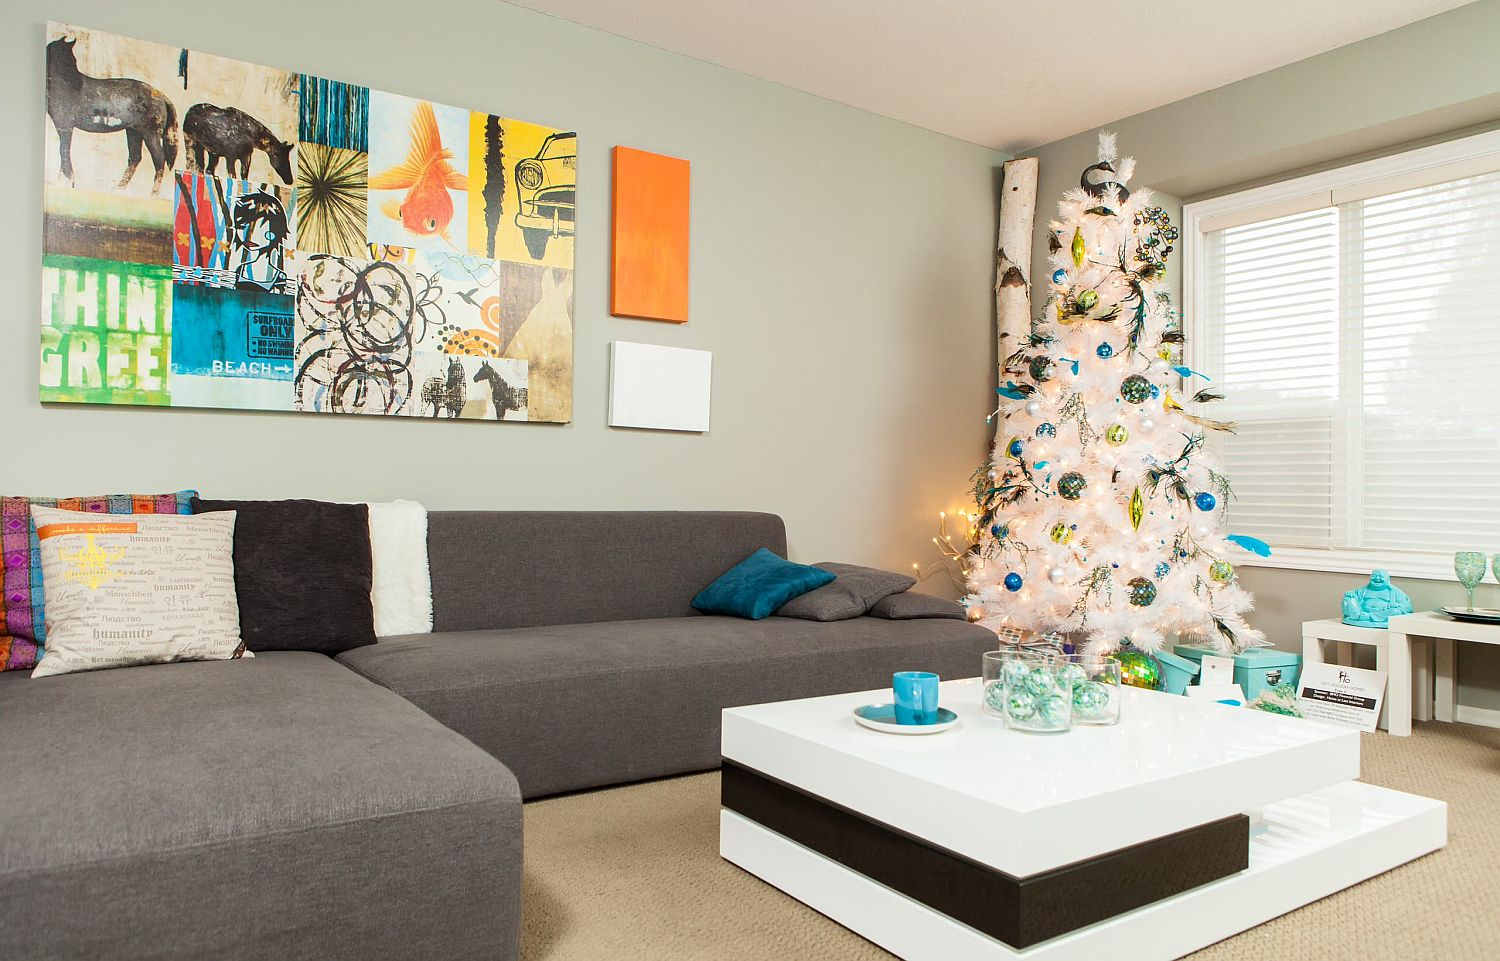 Dashing wall art addition behind the couch for a living room with festive charm